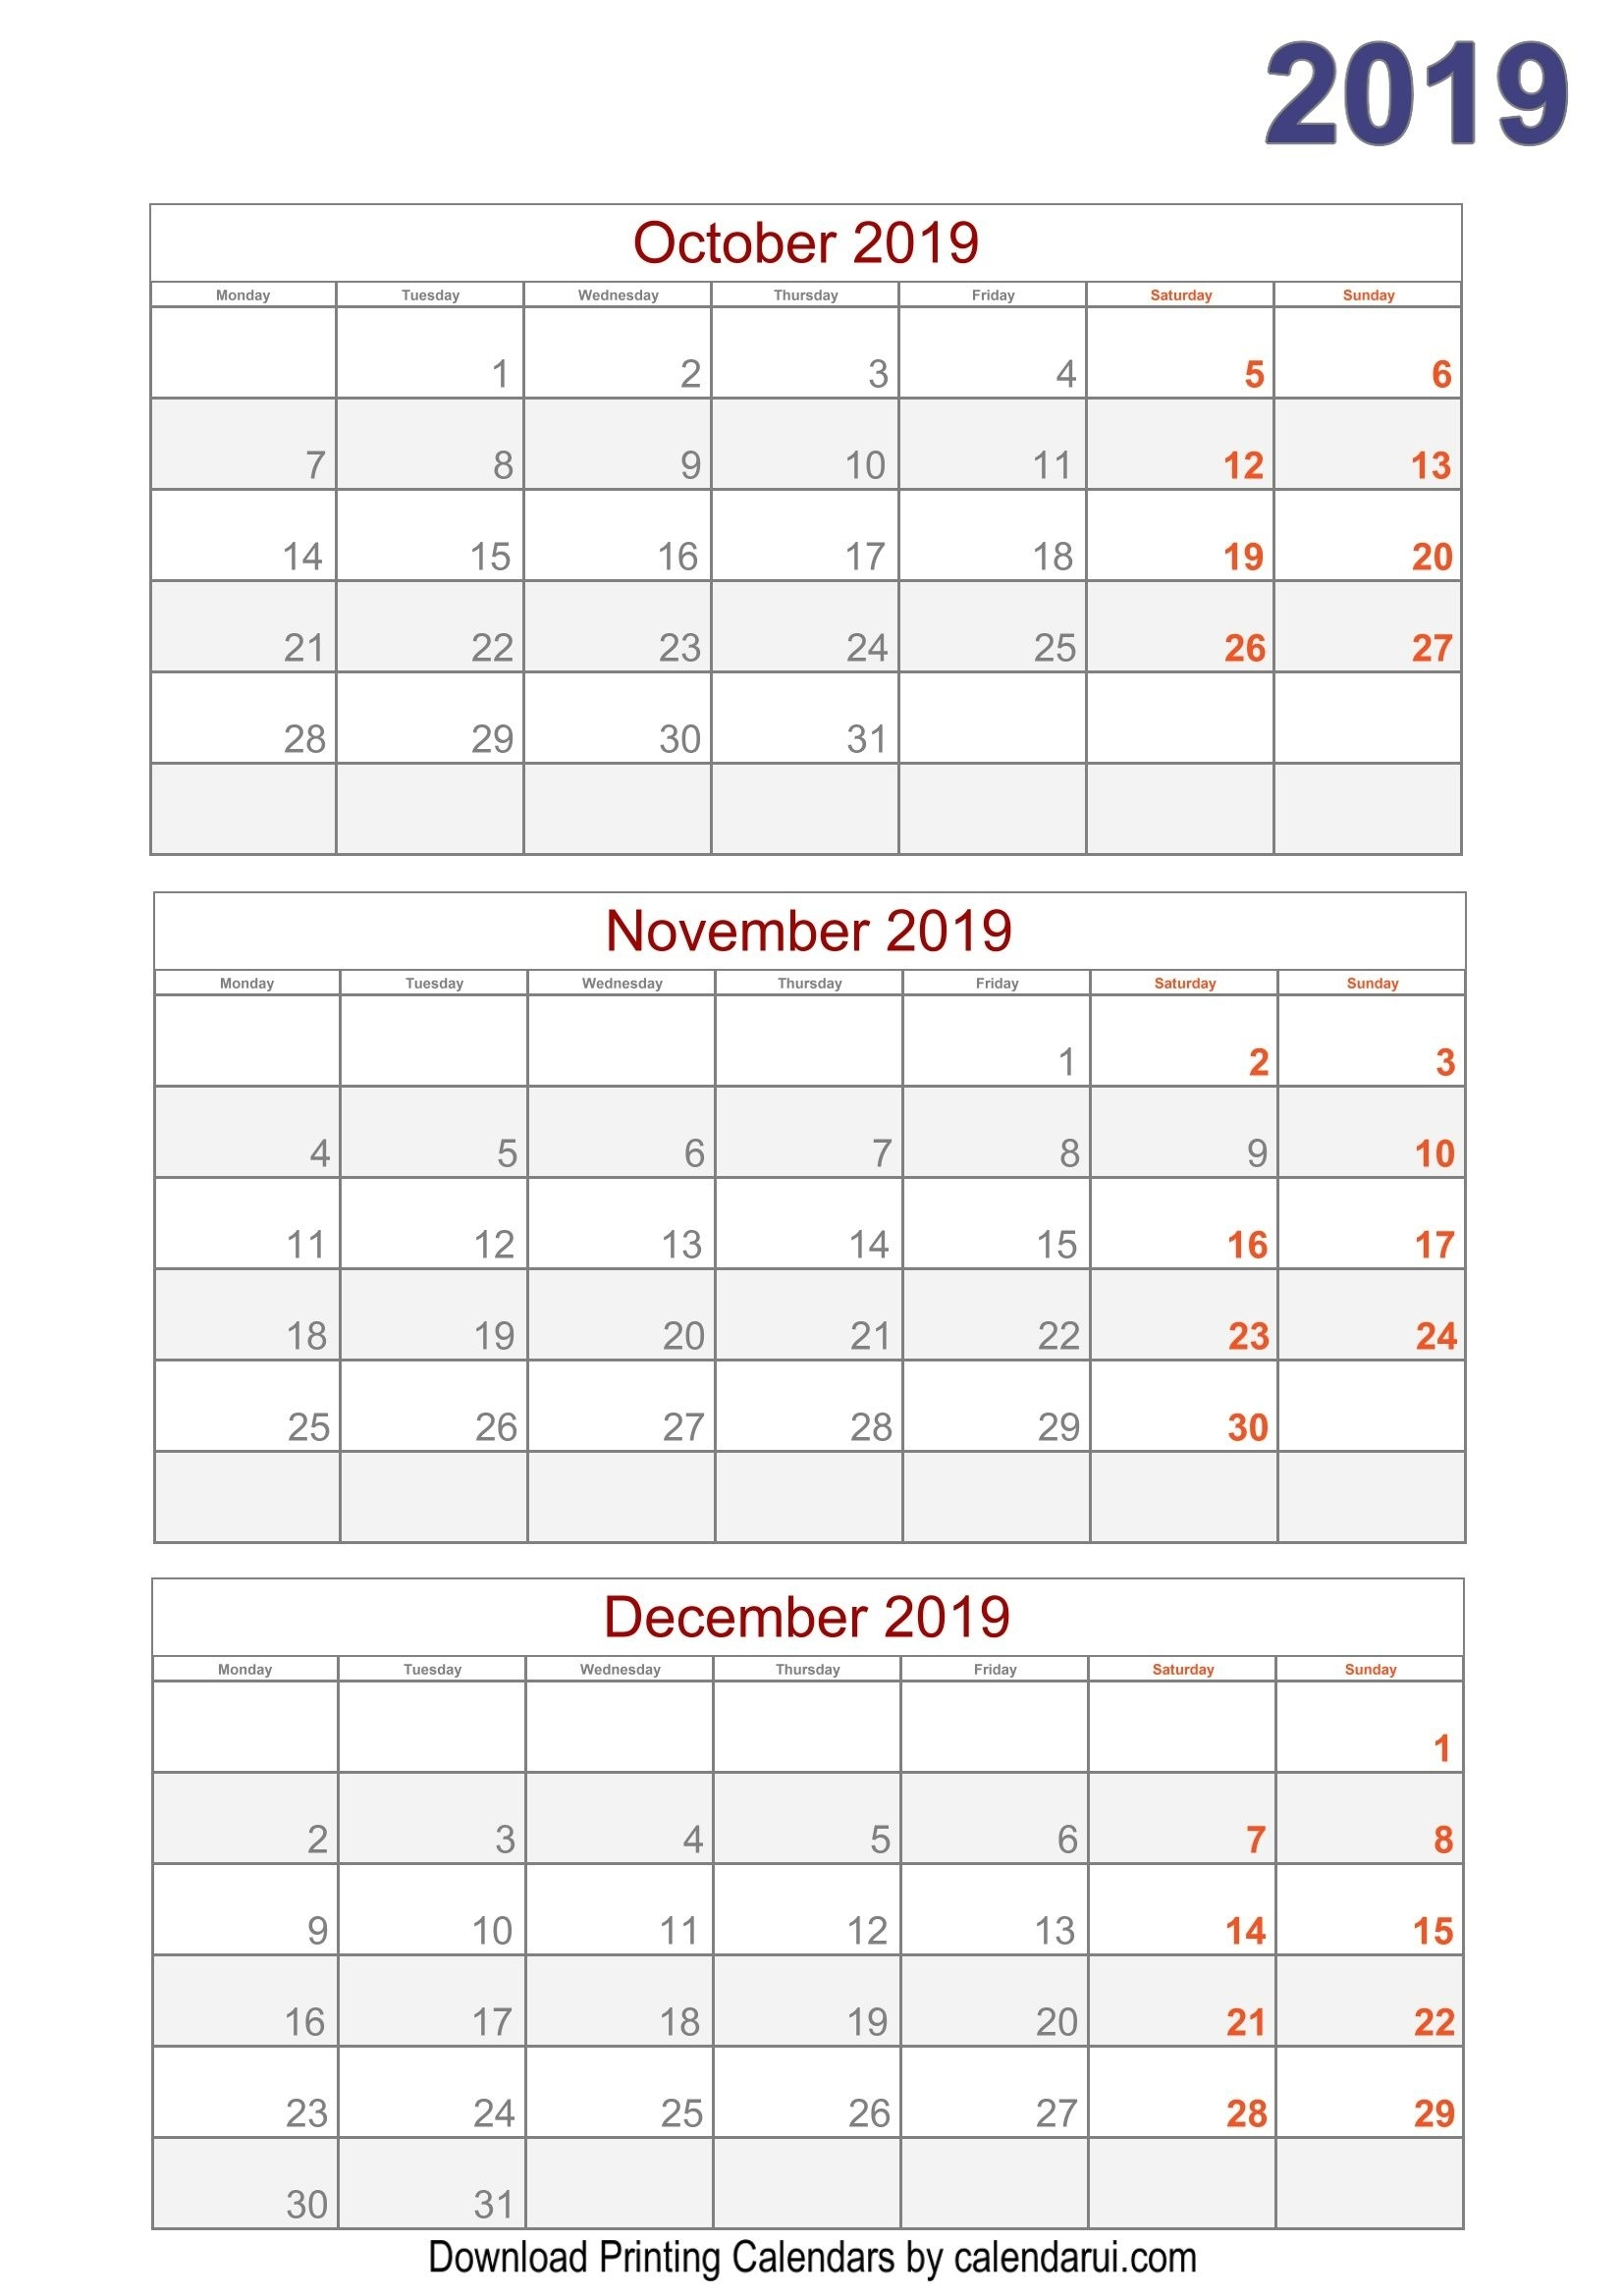 Download 2019 Quarterly Calendar Printable For Free (With